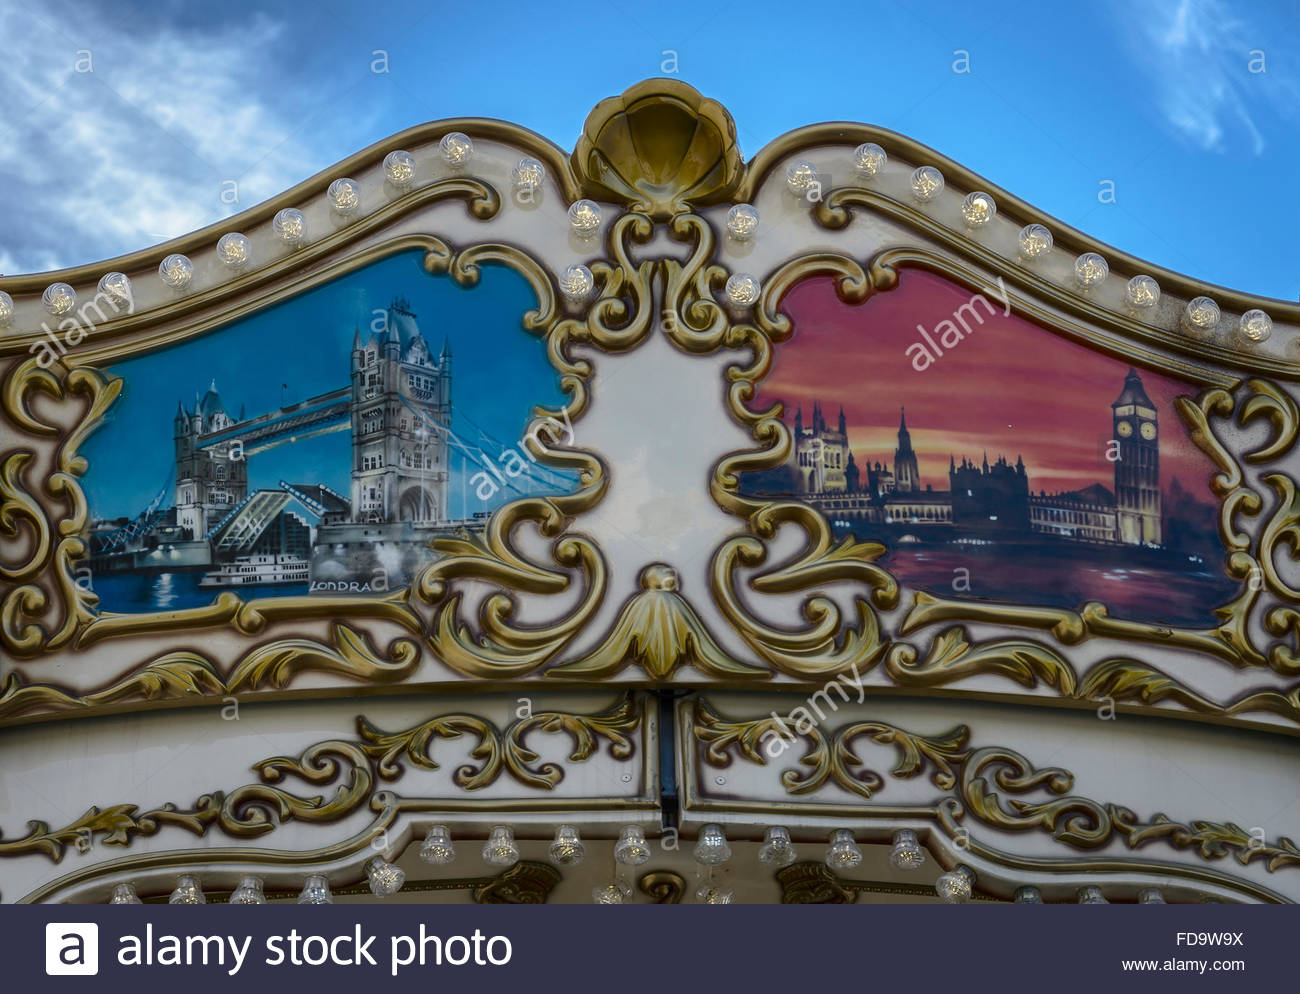 1300x994 A Drawing Of London City In The Top Of A Merry Go Round Stock